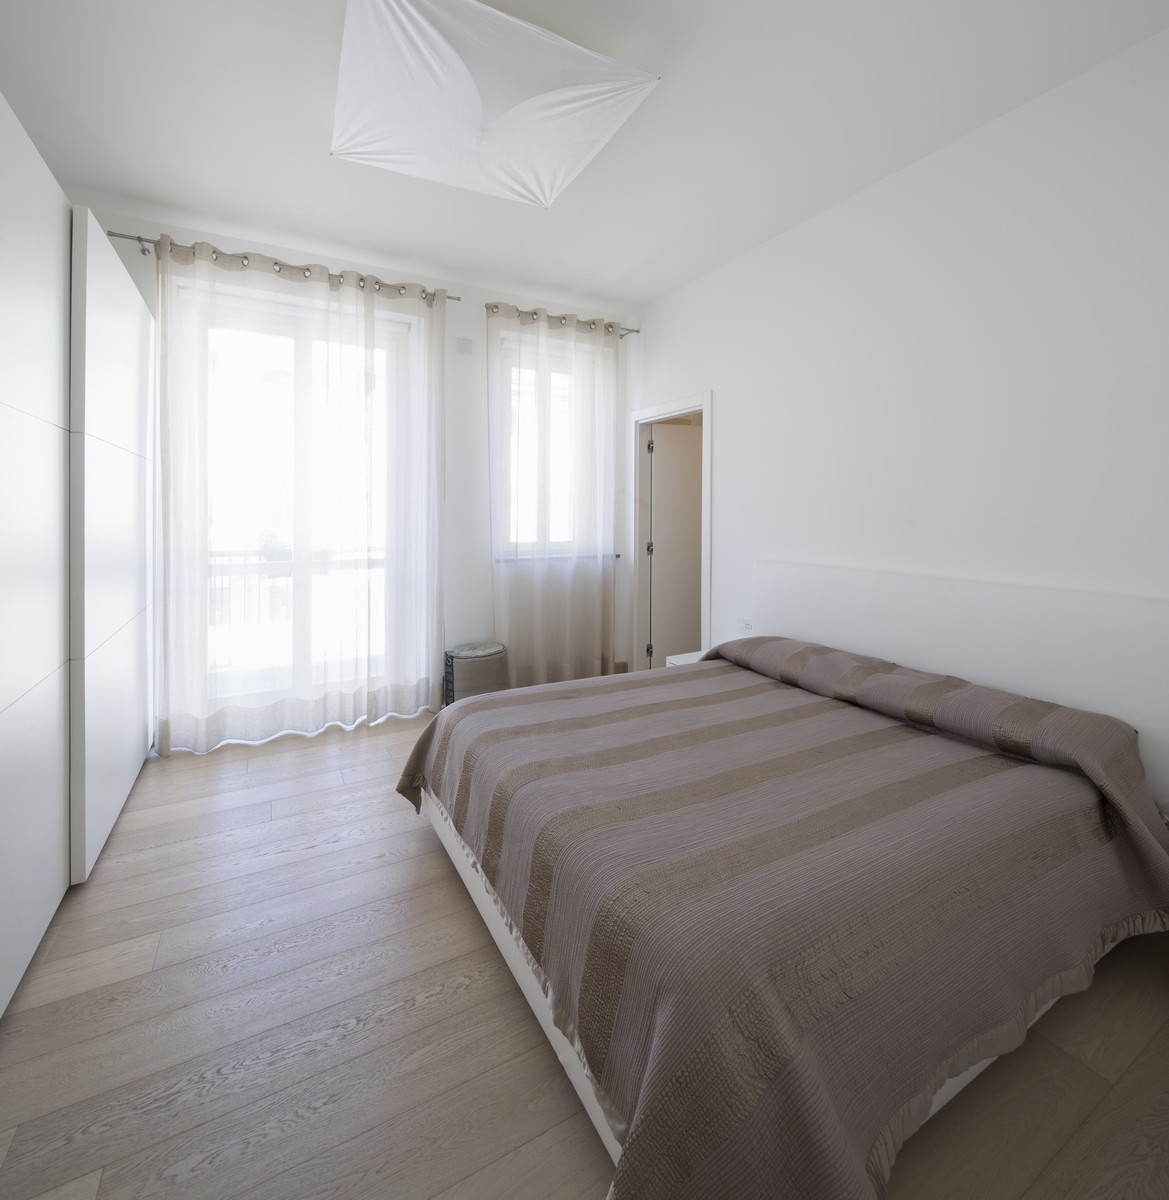 Additional photo for property listing at Exclusive Apartment a short walk from Piazza San Carlo Via Alfieri Turin, Turin 10121 Italy